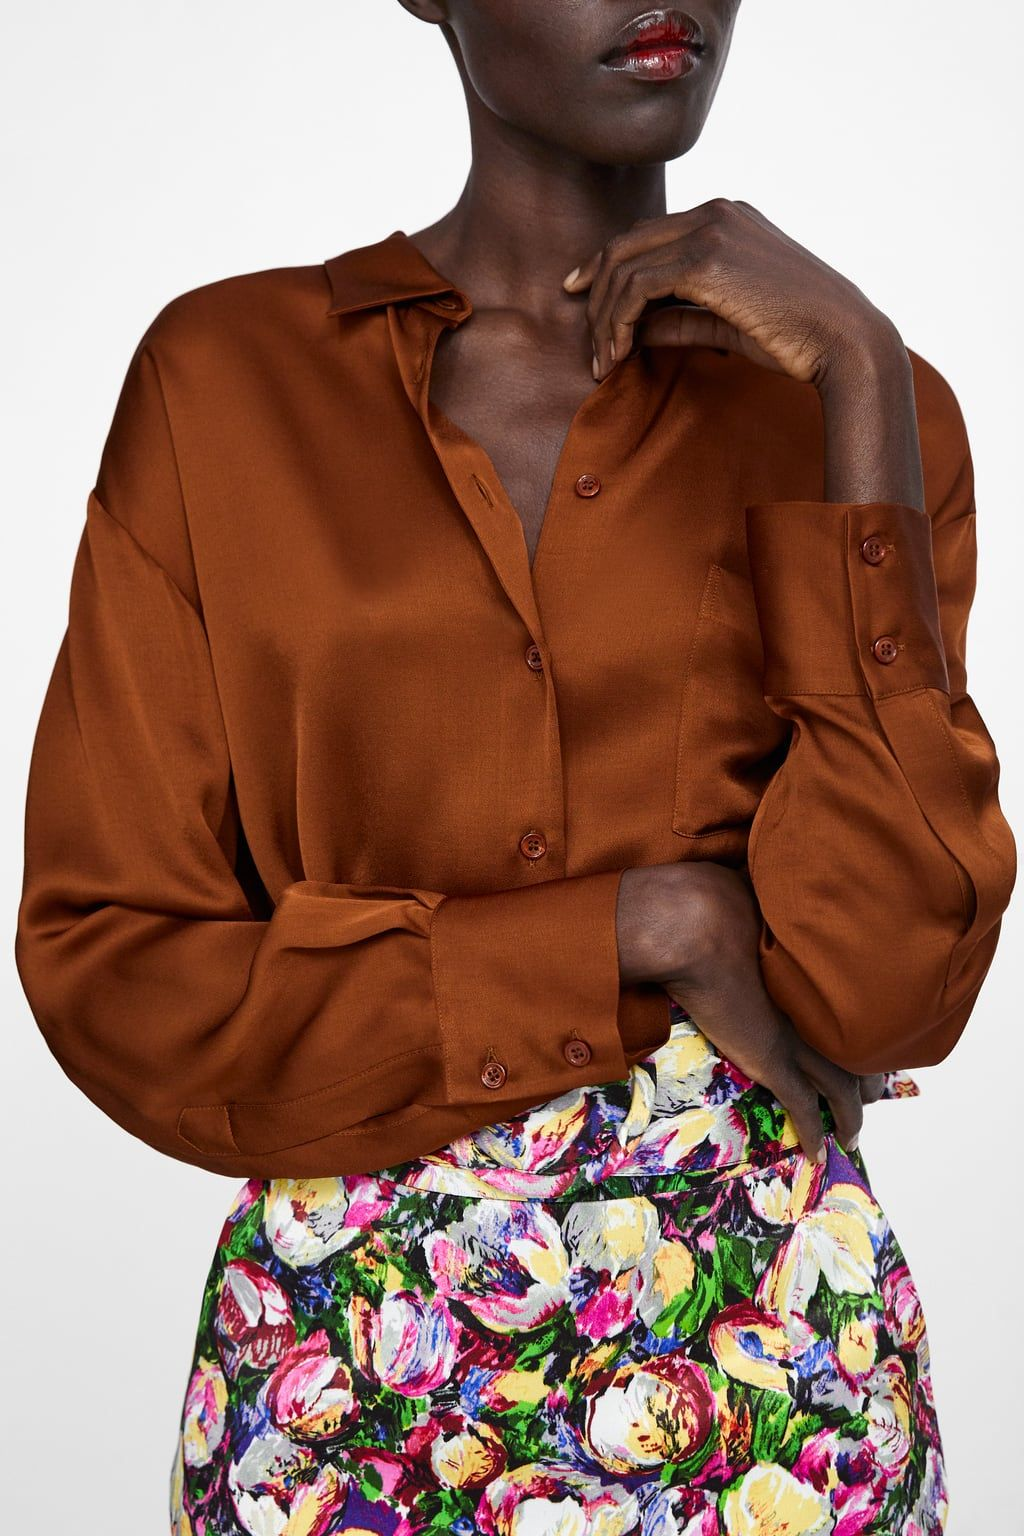 e2d64a65 ... a top in this color, I suggest you get one. It's beautiful and  flattering. It also works with any neutrals you have in your wardrobe. SATIN  SHIRT WITH ...